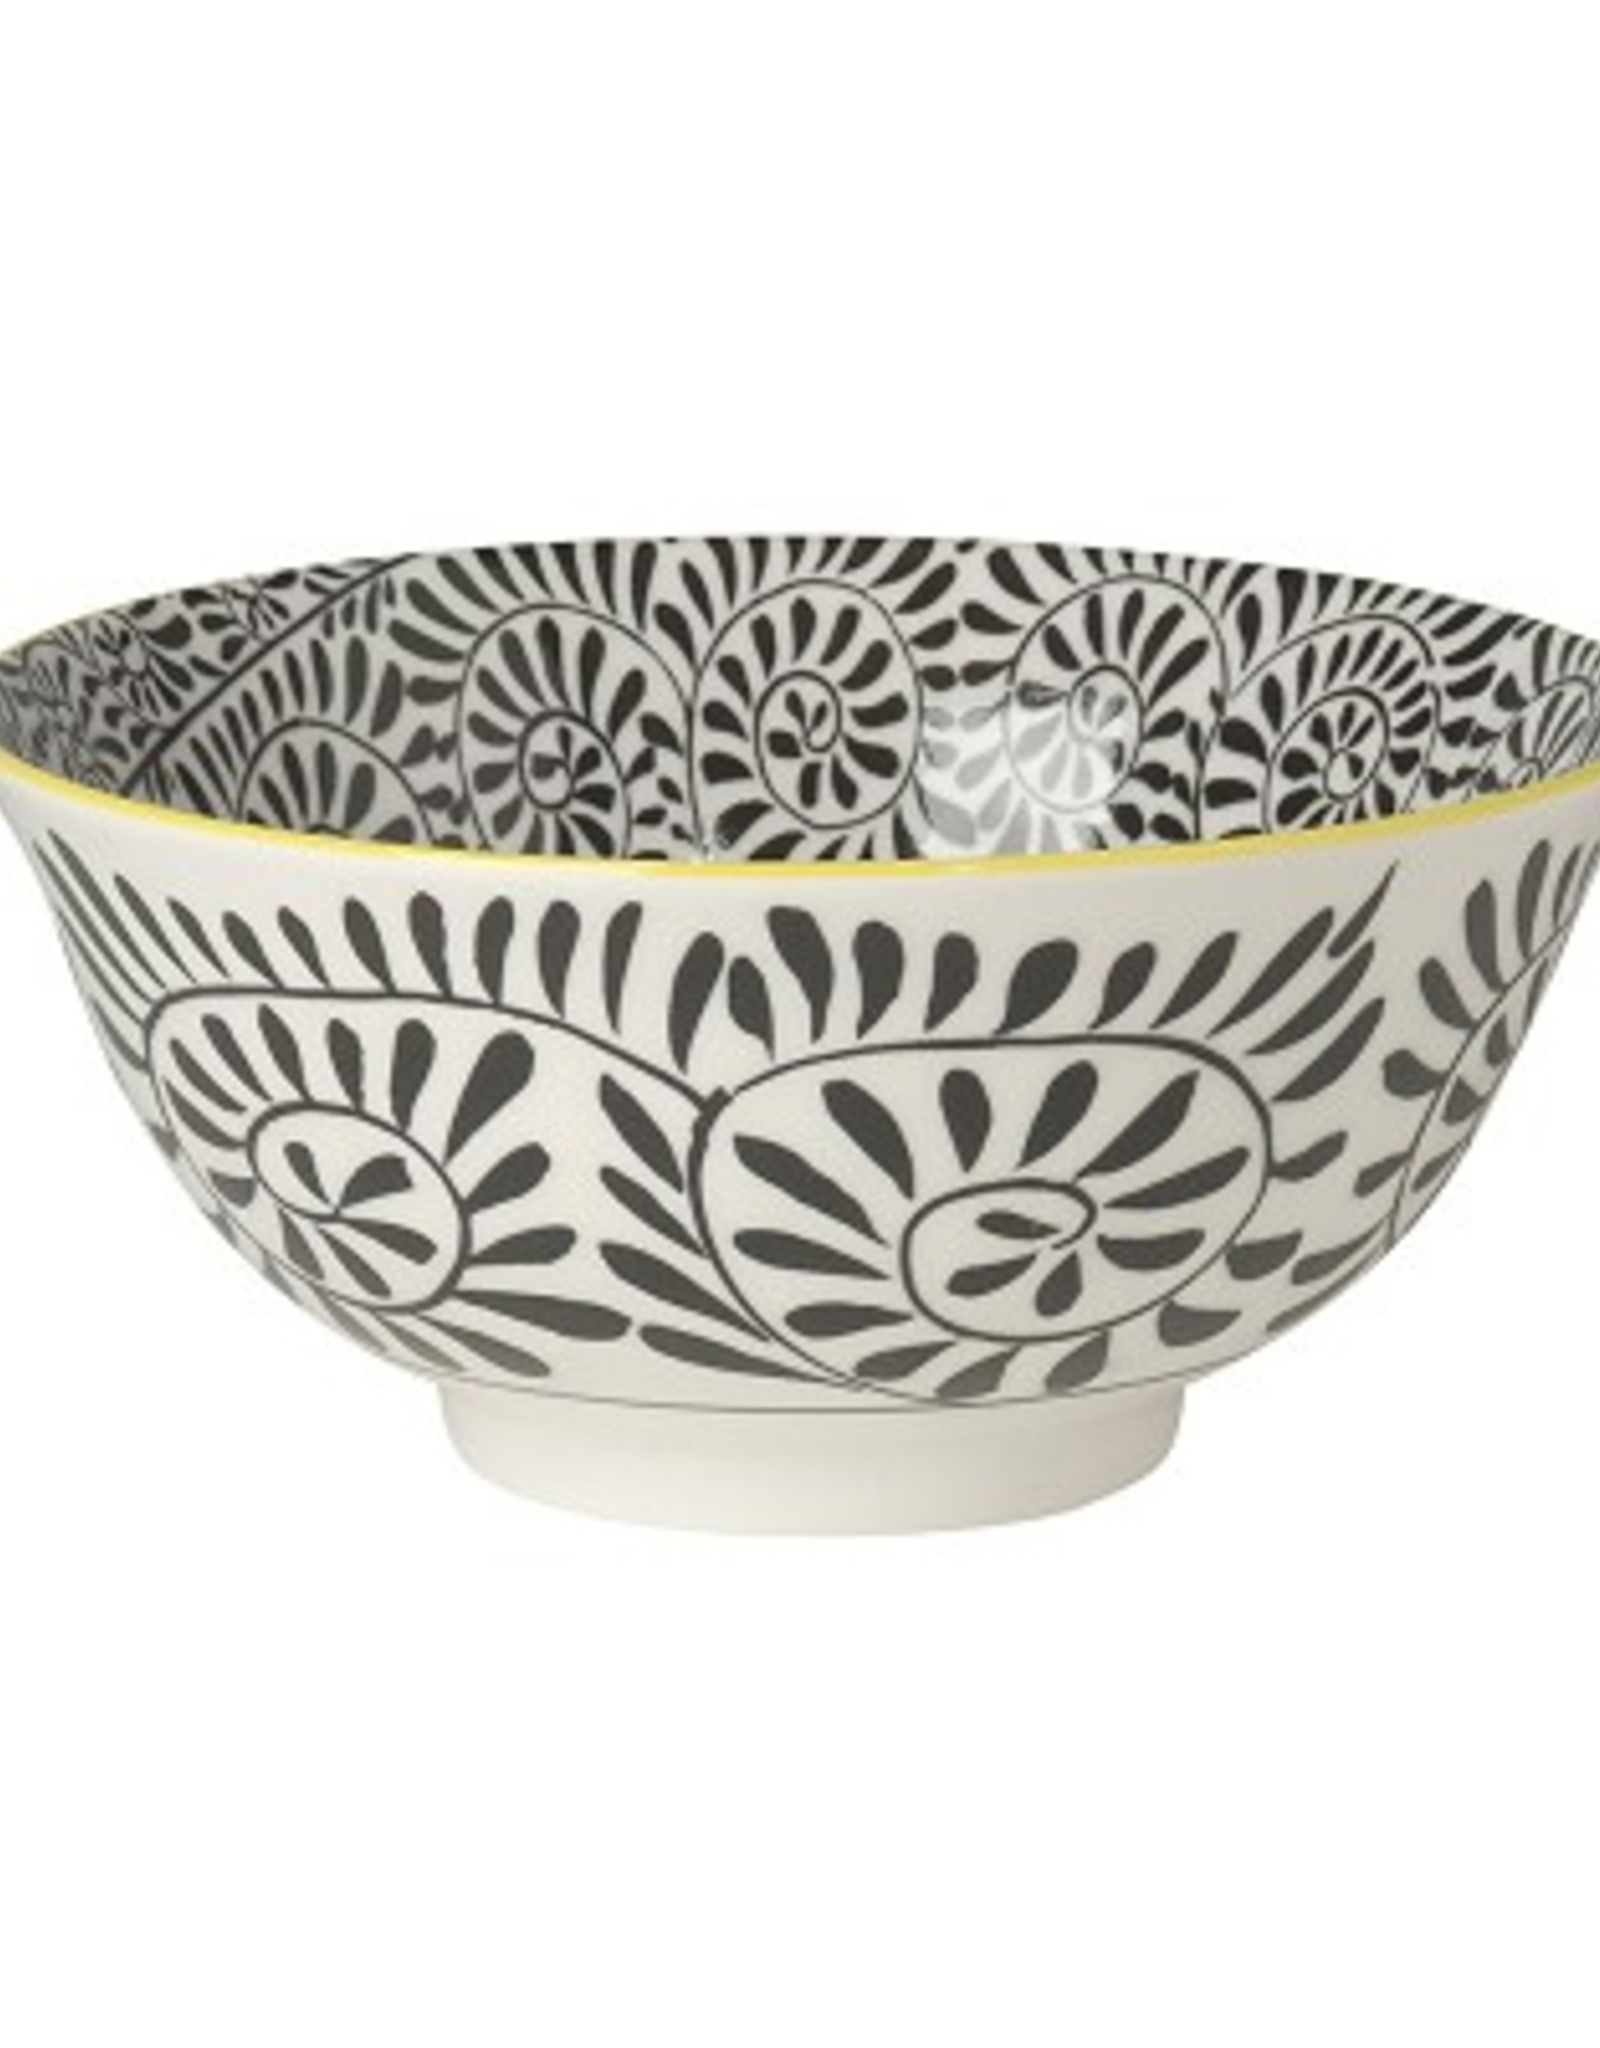 Now Designs Stamped Bowl, Black Vines